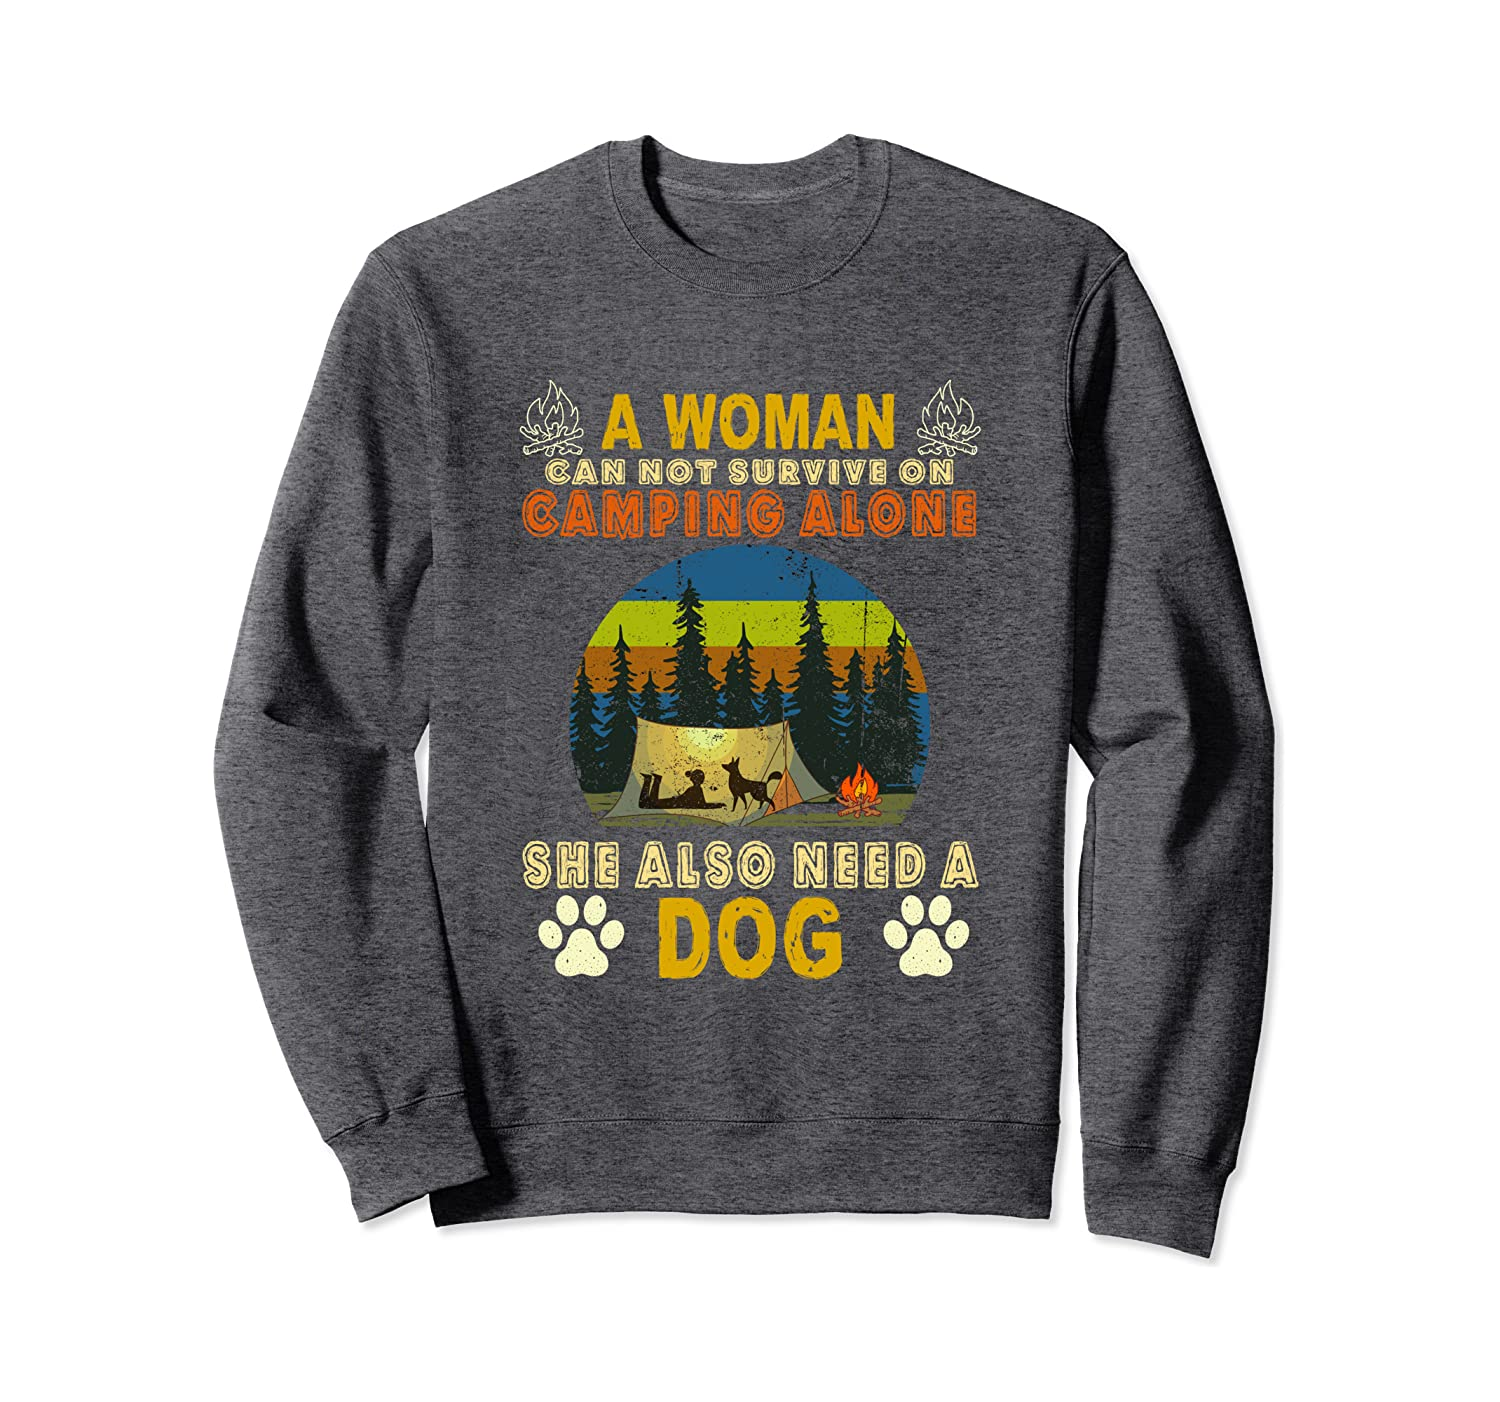 A woman can not survive on camping alone she also need a dog Sweatshirt